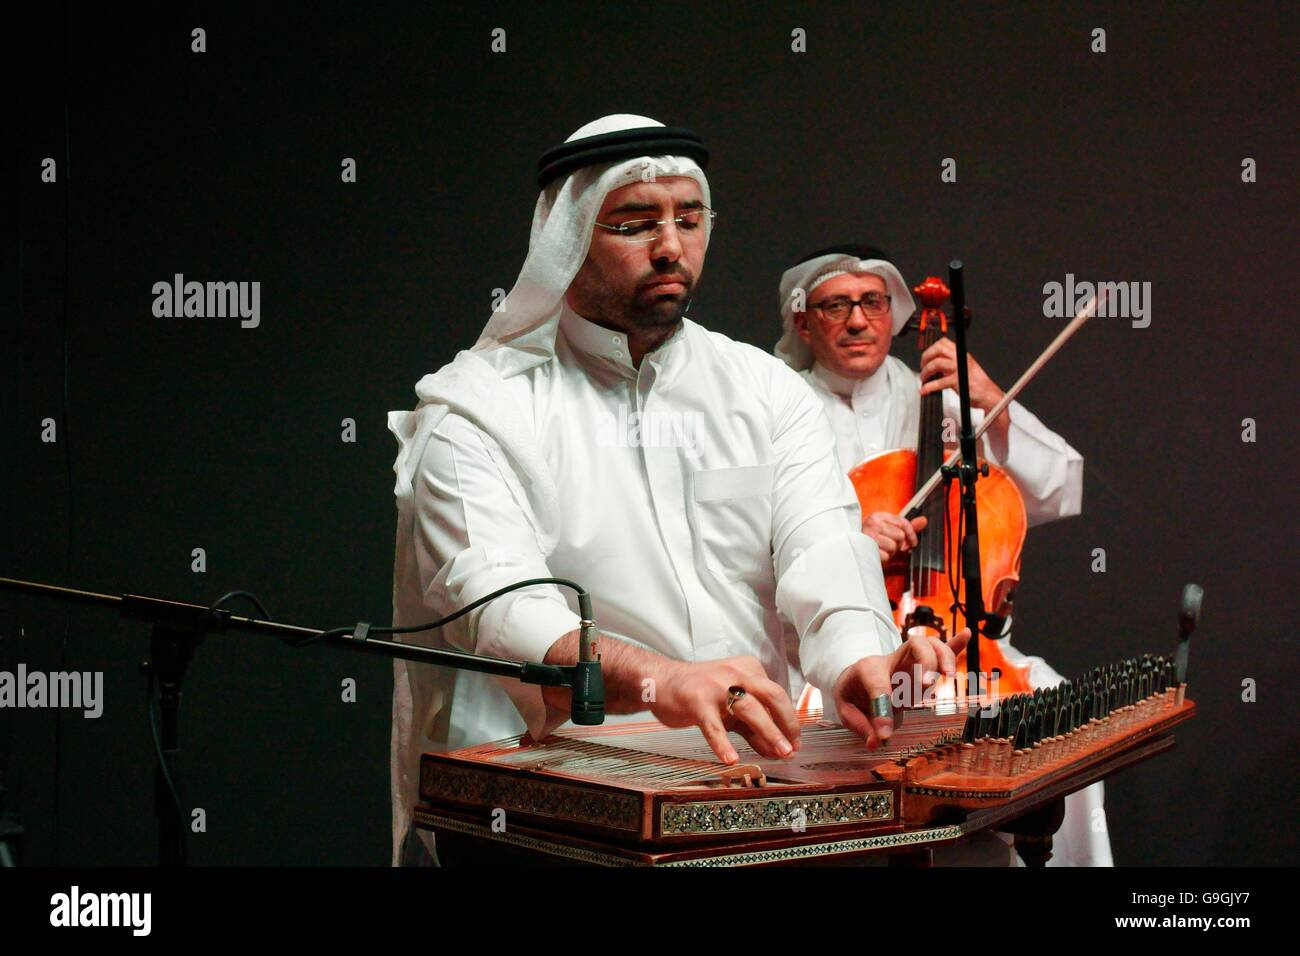 Musician of the Mohammed bin Faris Ensemble plays qunan zither at traditional sawt music concert in Al Khalifa Centre, Stock Photo